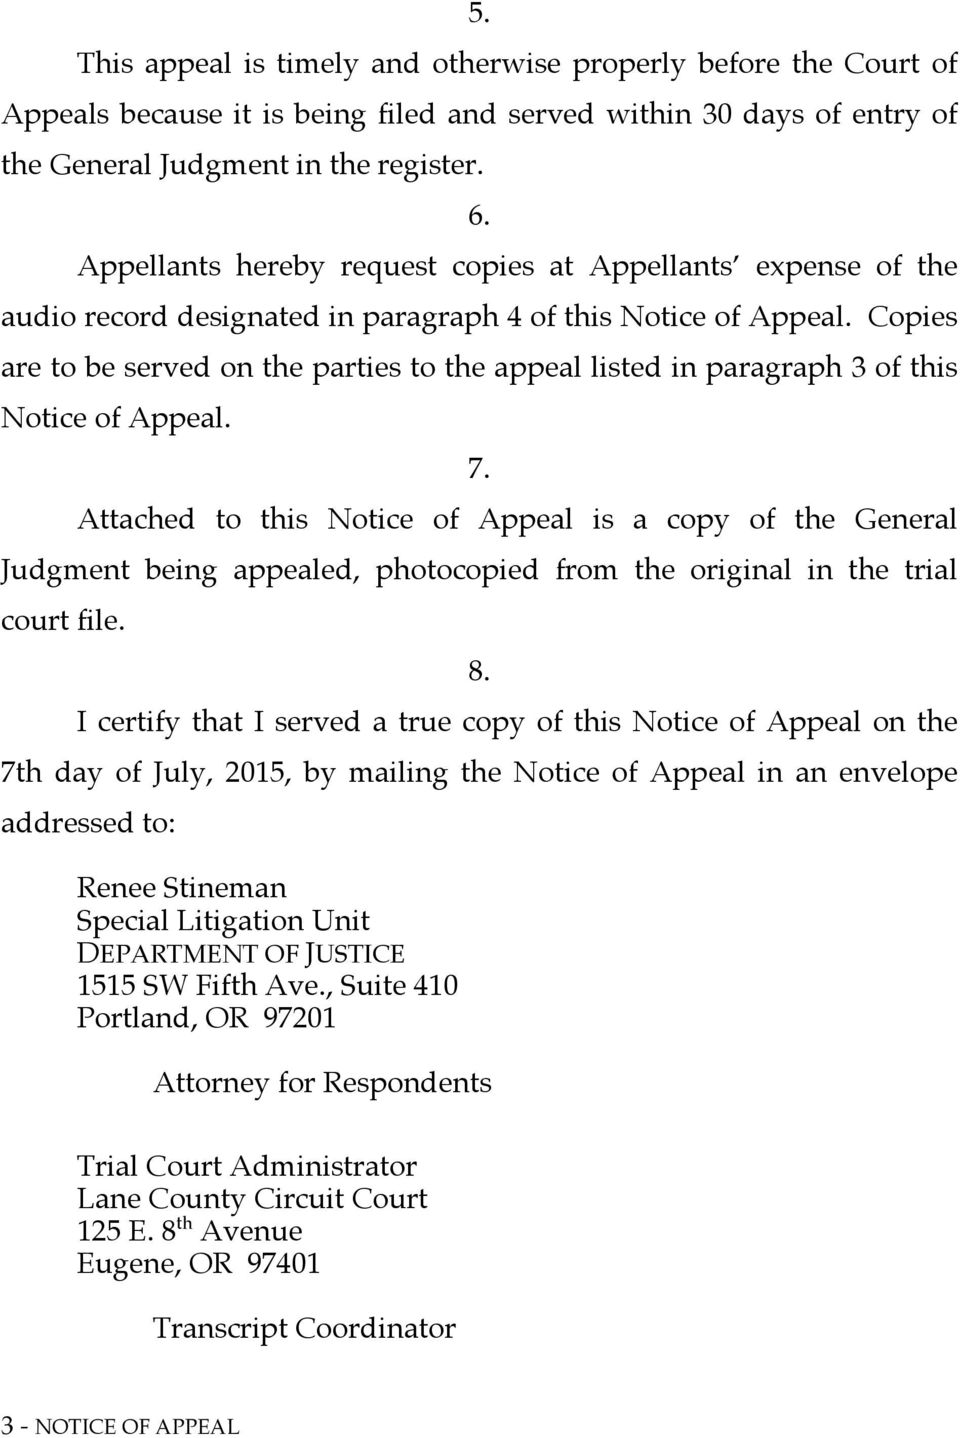 Copies are to be served on the parties to the appeal listed in paragraph 3 of this Notice of Appeal. 7.